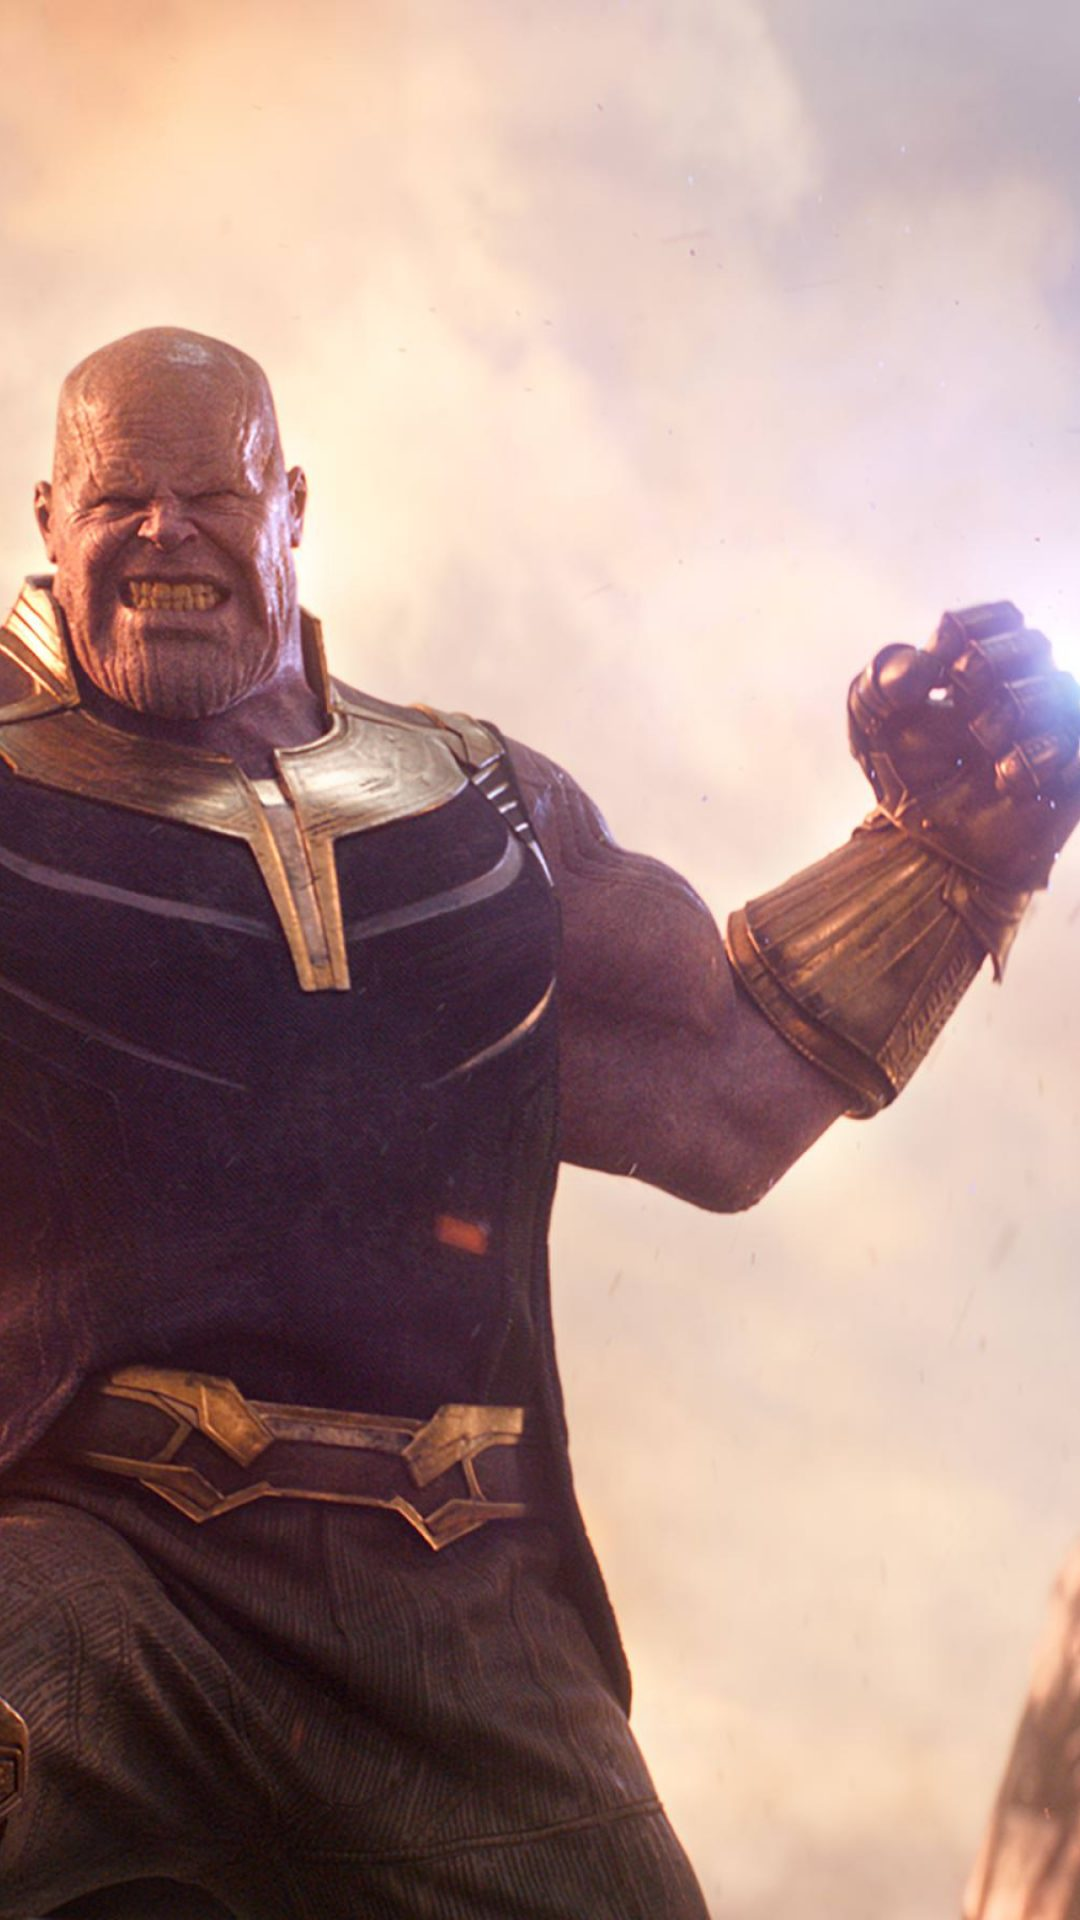 Avengers Infinity War 2018 Thanos 4k Ultra Hd Wallpaper